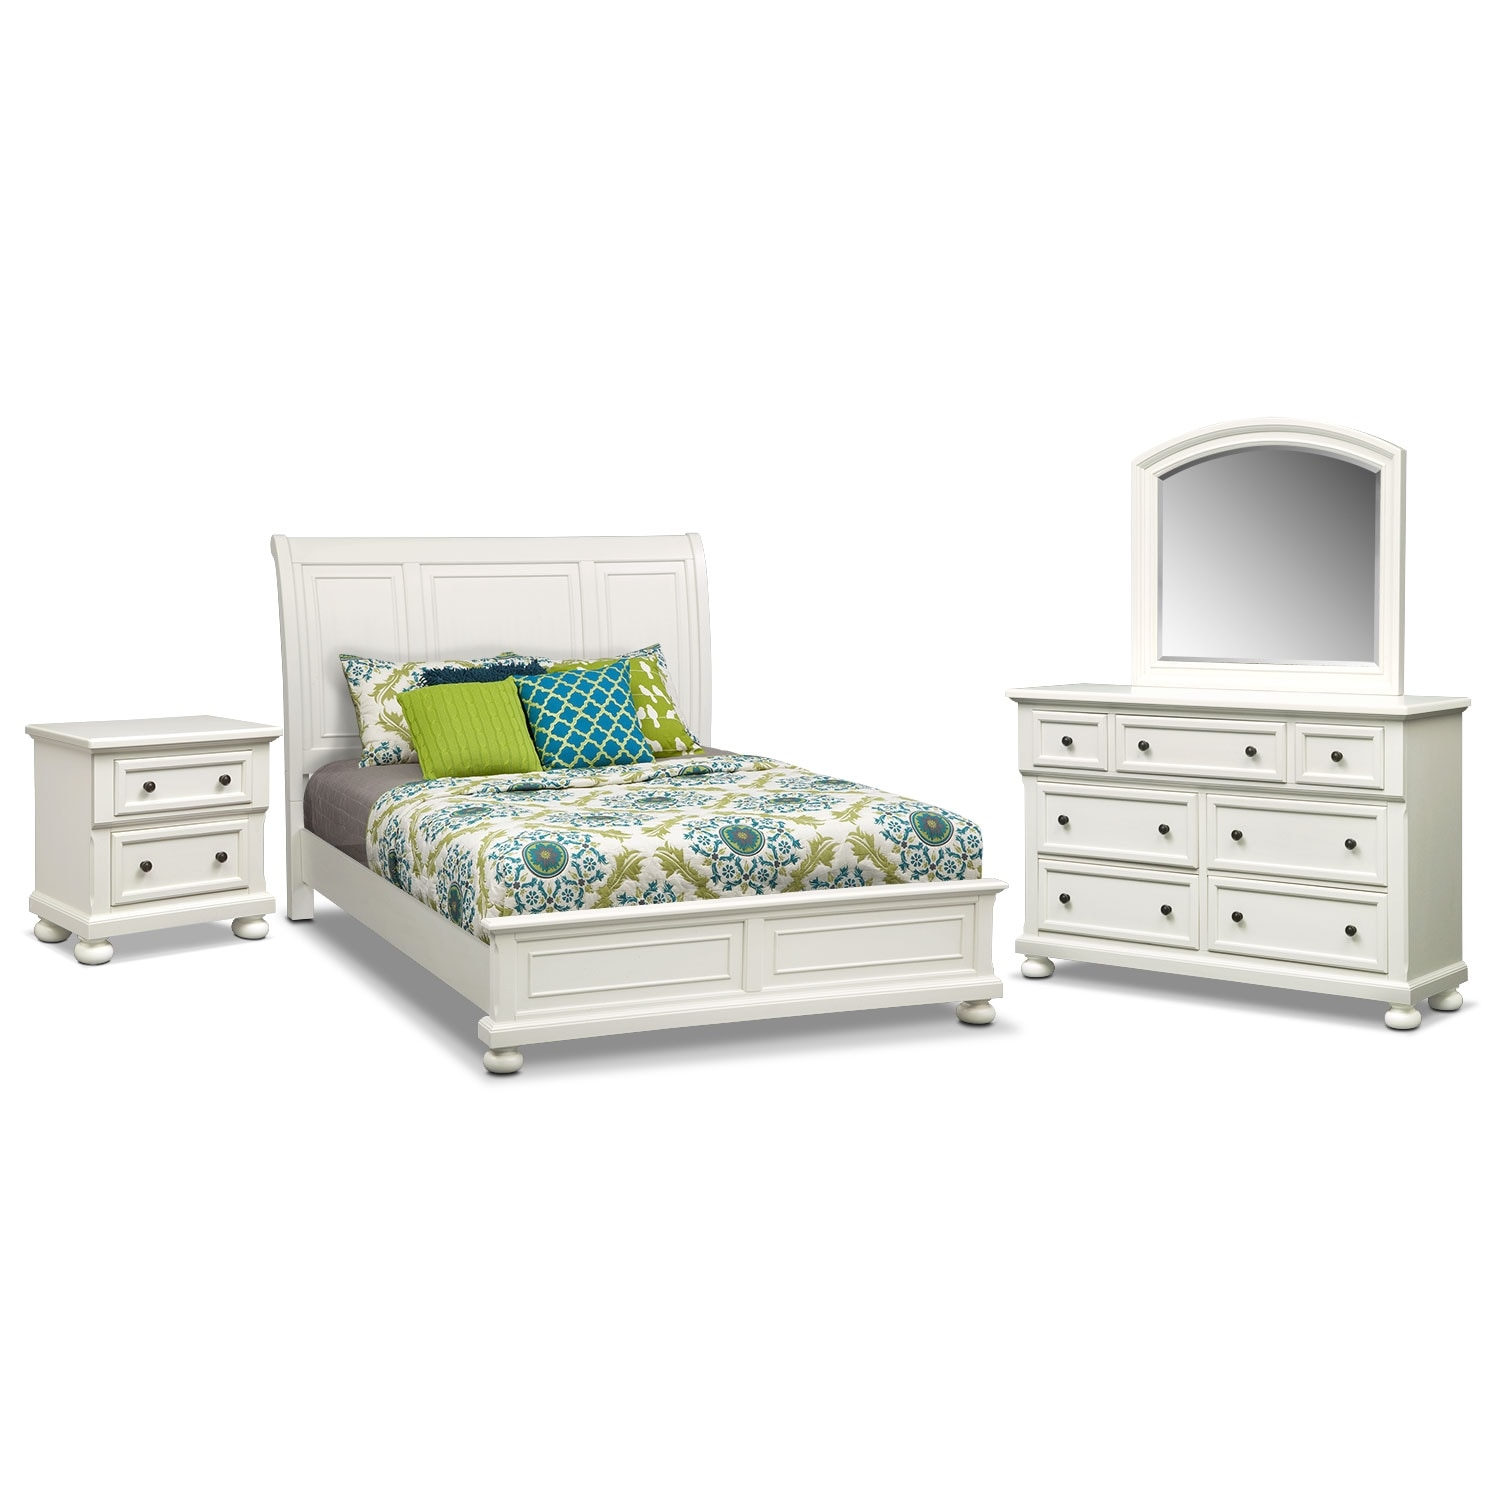 Hanover 6-Piece King Panel Bedroom Set - White